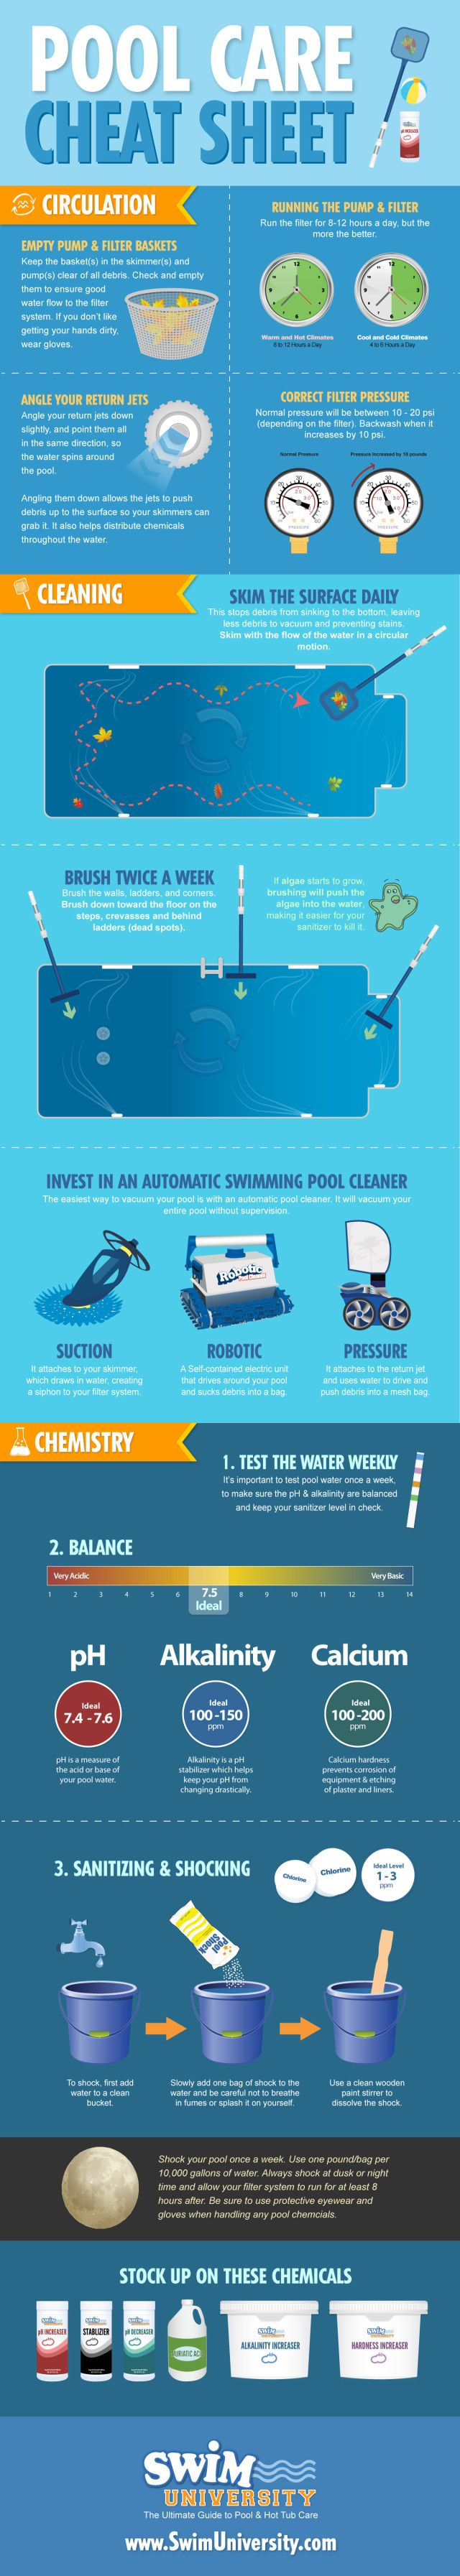 The Pool Care Cheat Sheet is a single graphic helps you stay on track with pool maintenance, pool cleaning and adding the right pool chemicals. Plenty of DIY tips for your swimming pool!